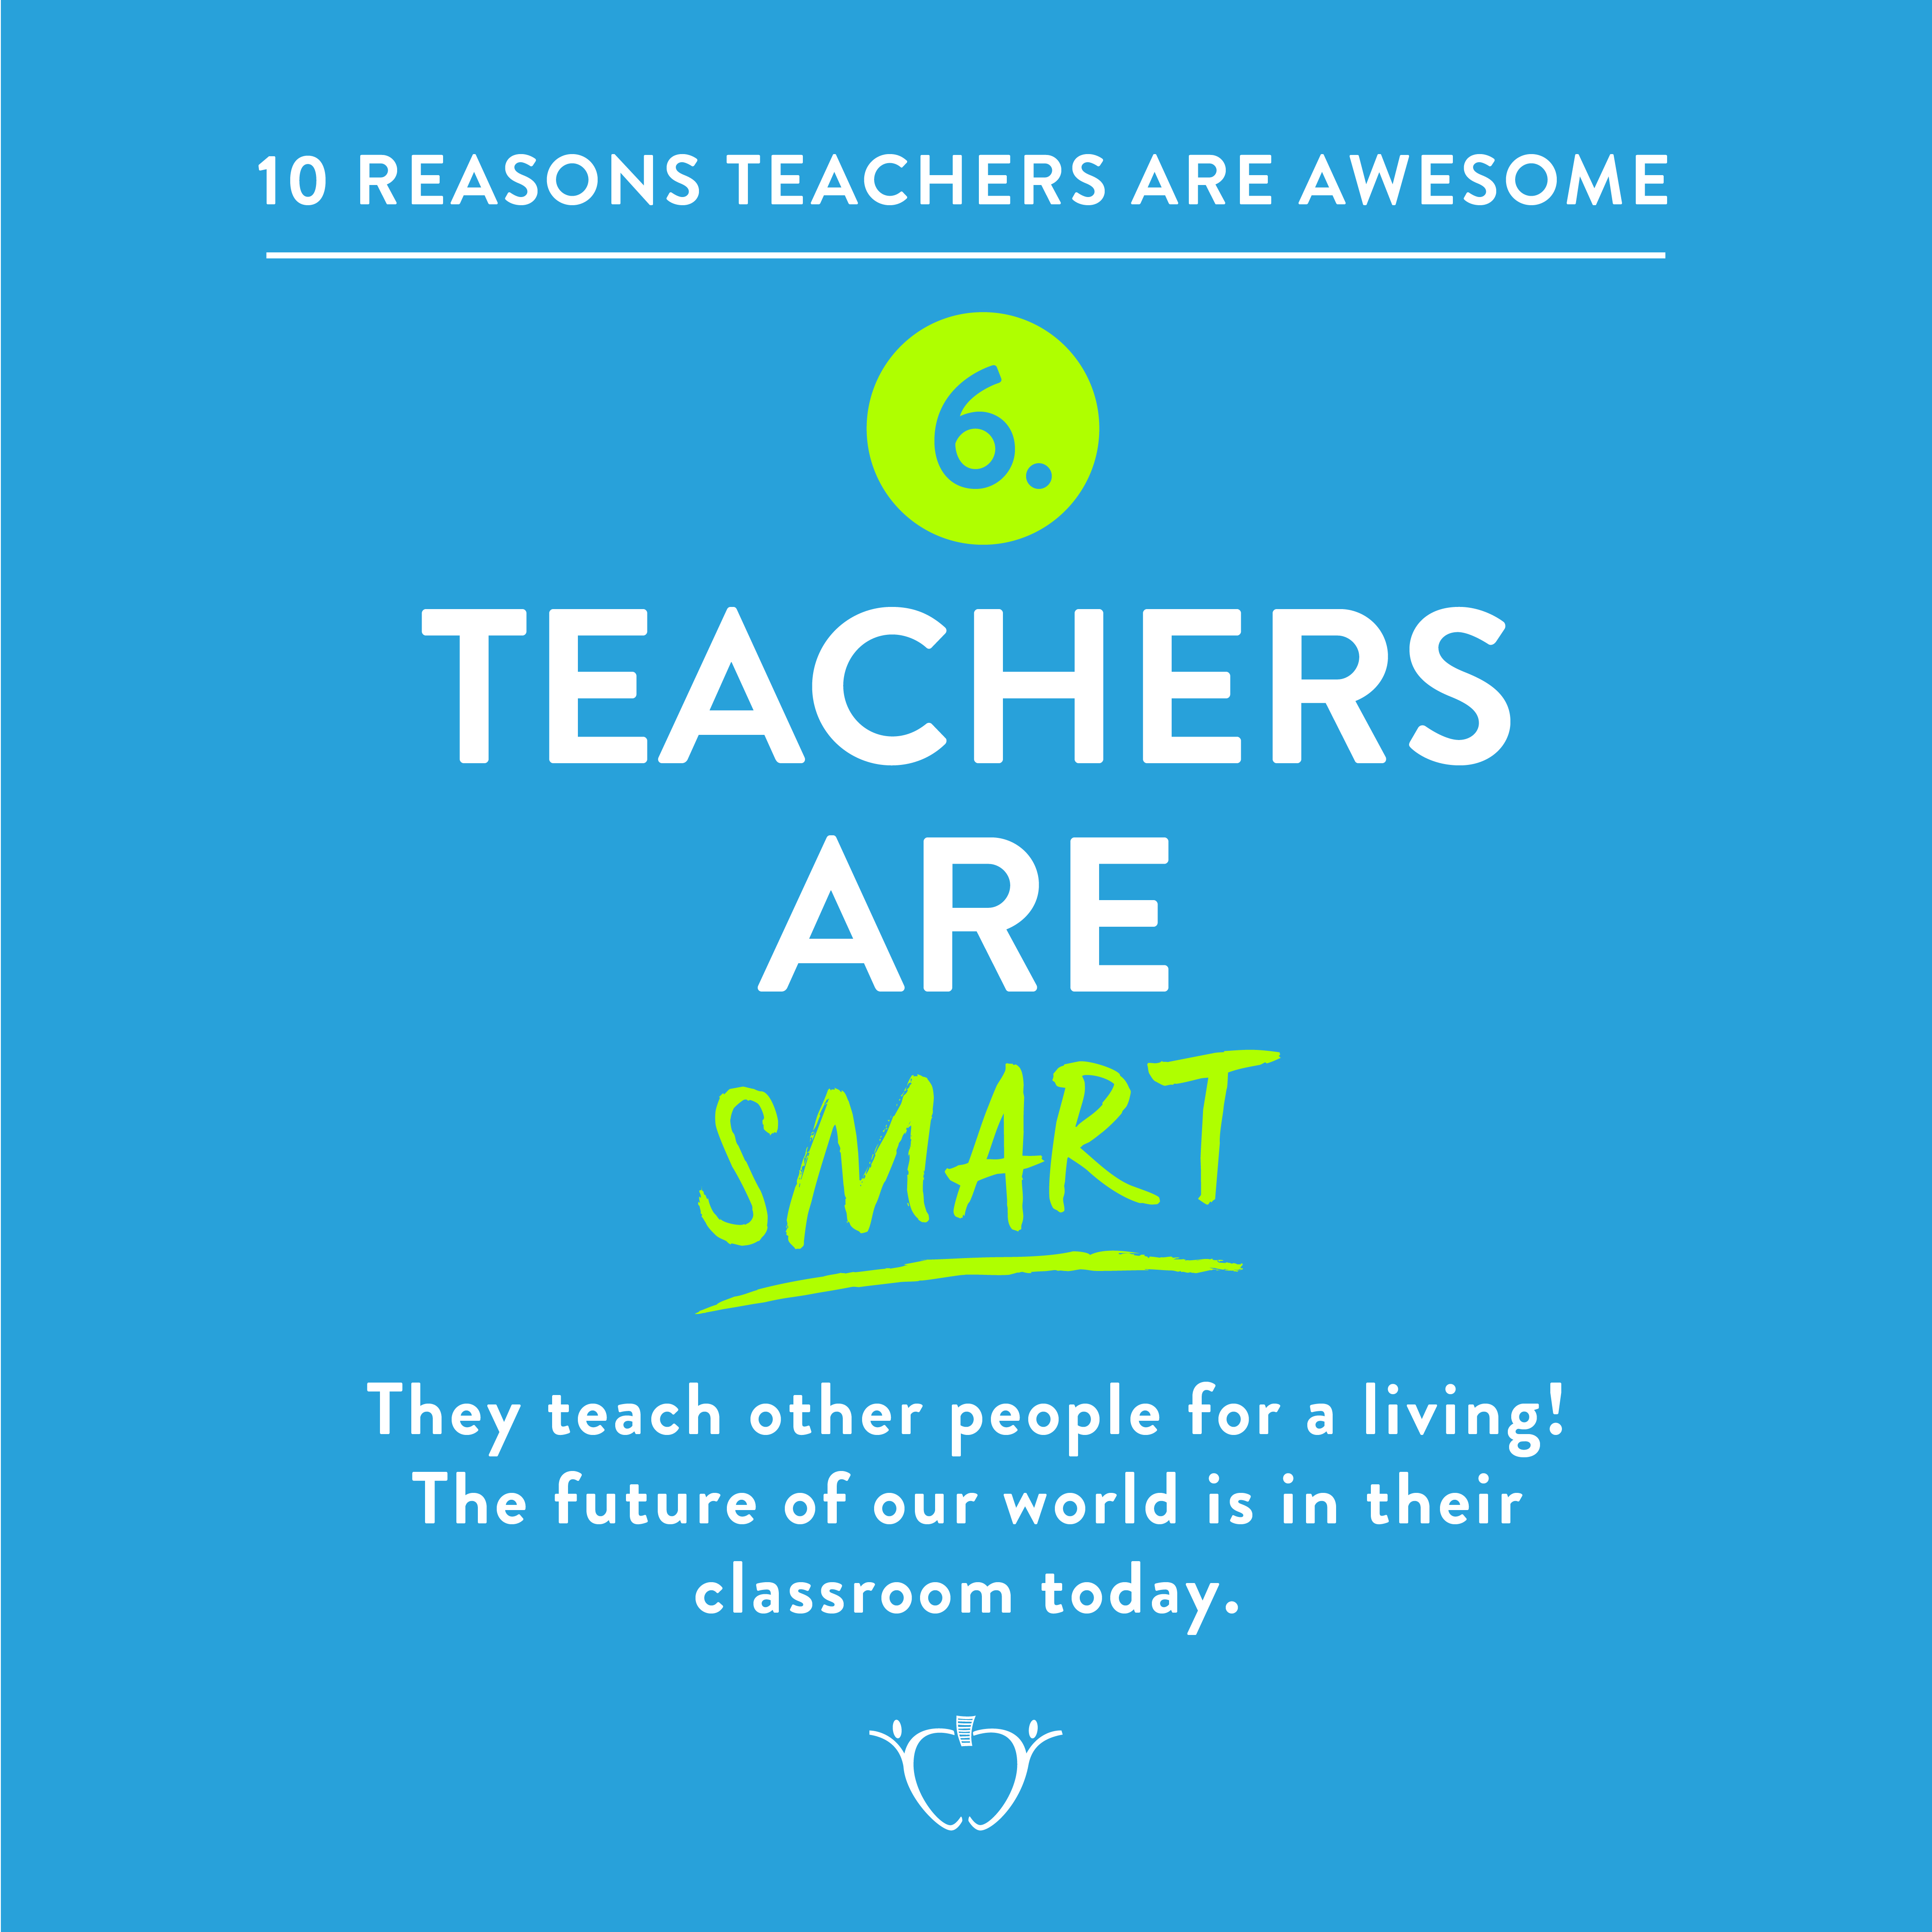 10 Reasons Teachers Are Awesome